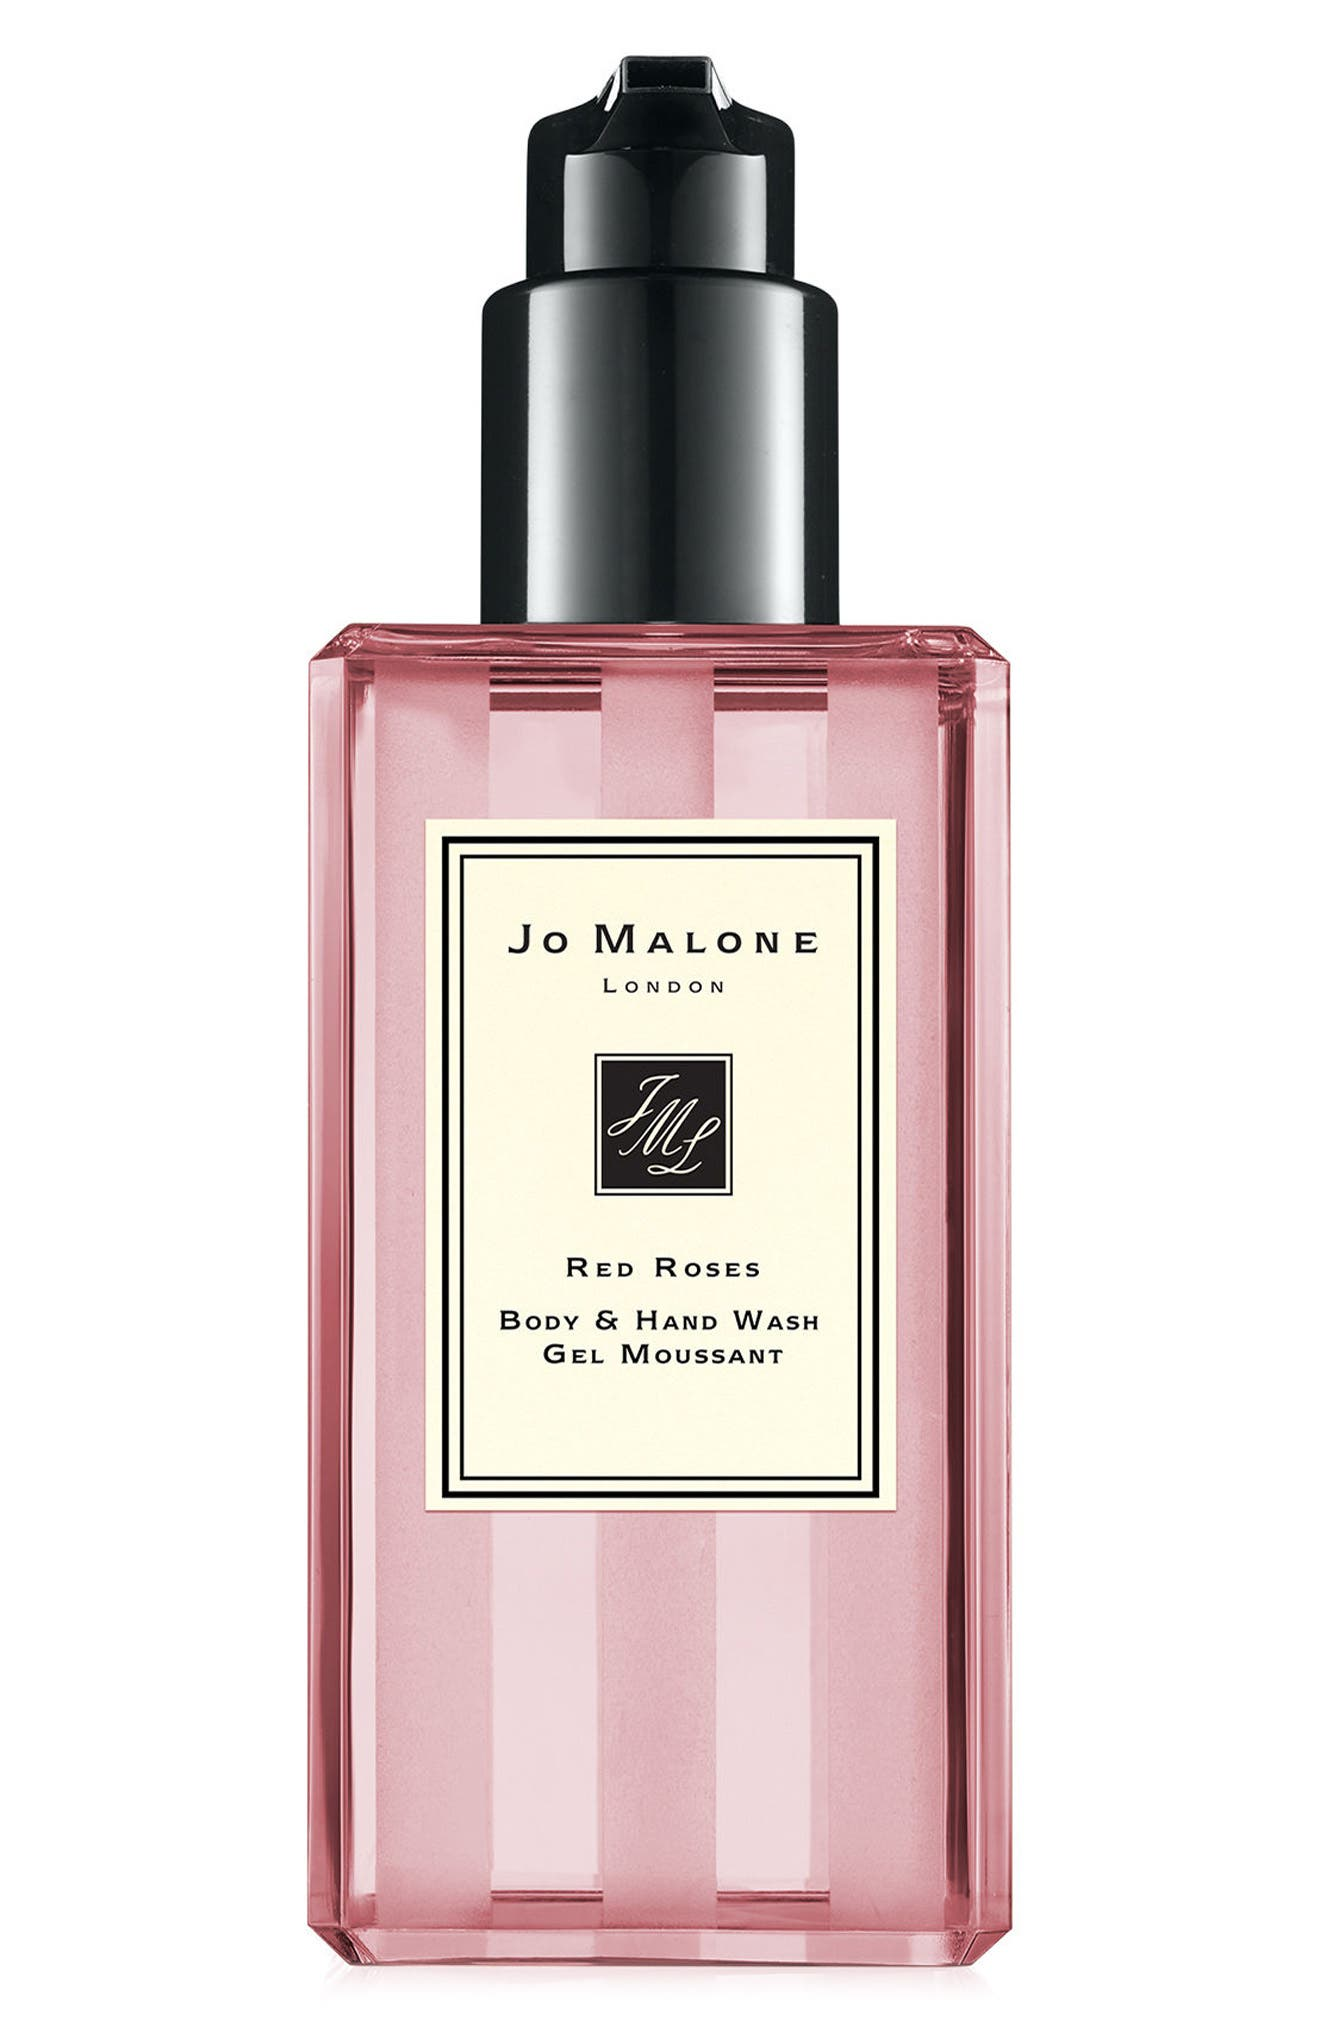 Jo Malone London™ Red Roses Body & Hand Wash